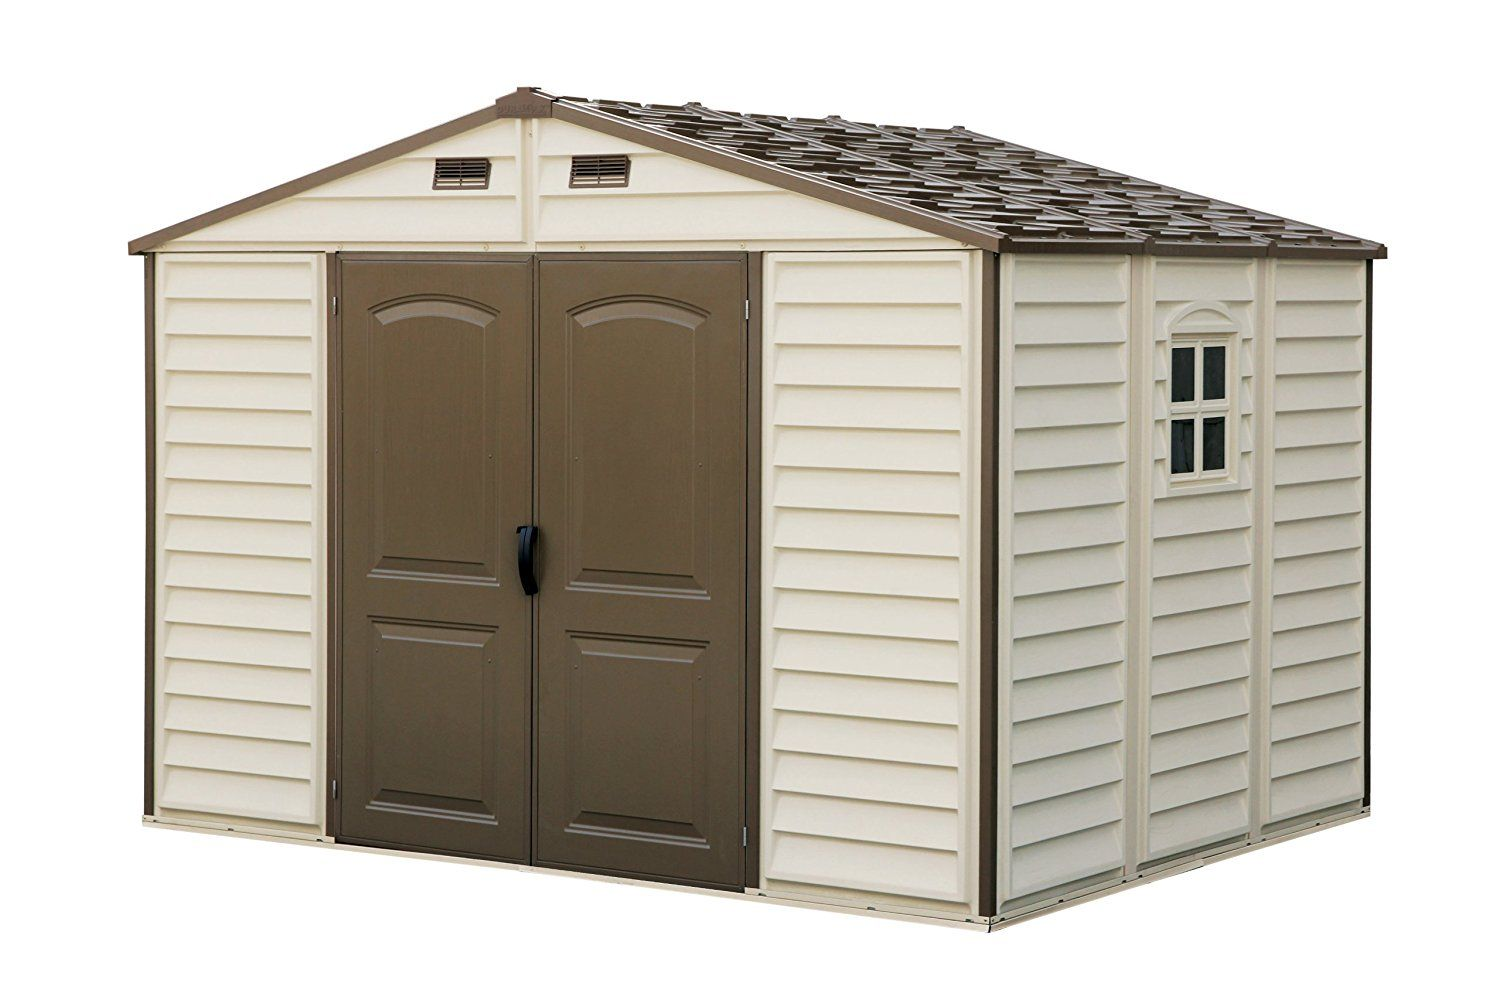 Woodside 10 X 8 Vinyl Storage Shed With Foundation And Three Fixed